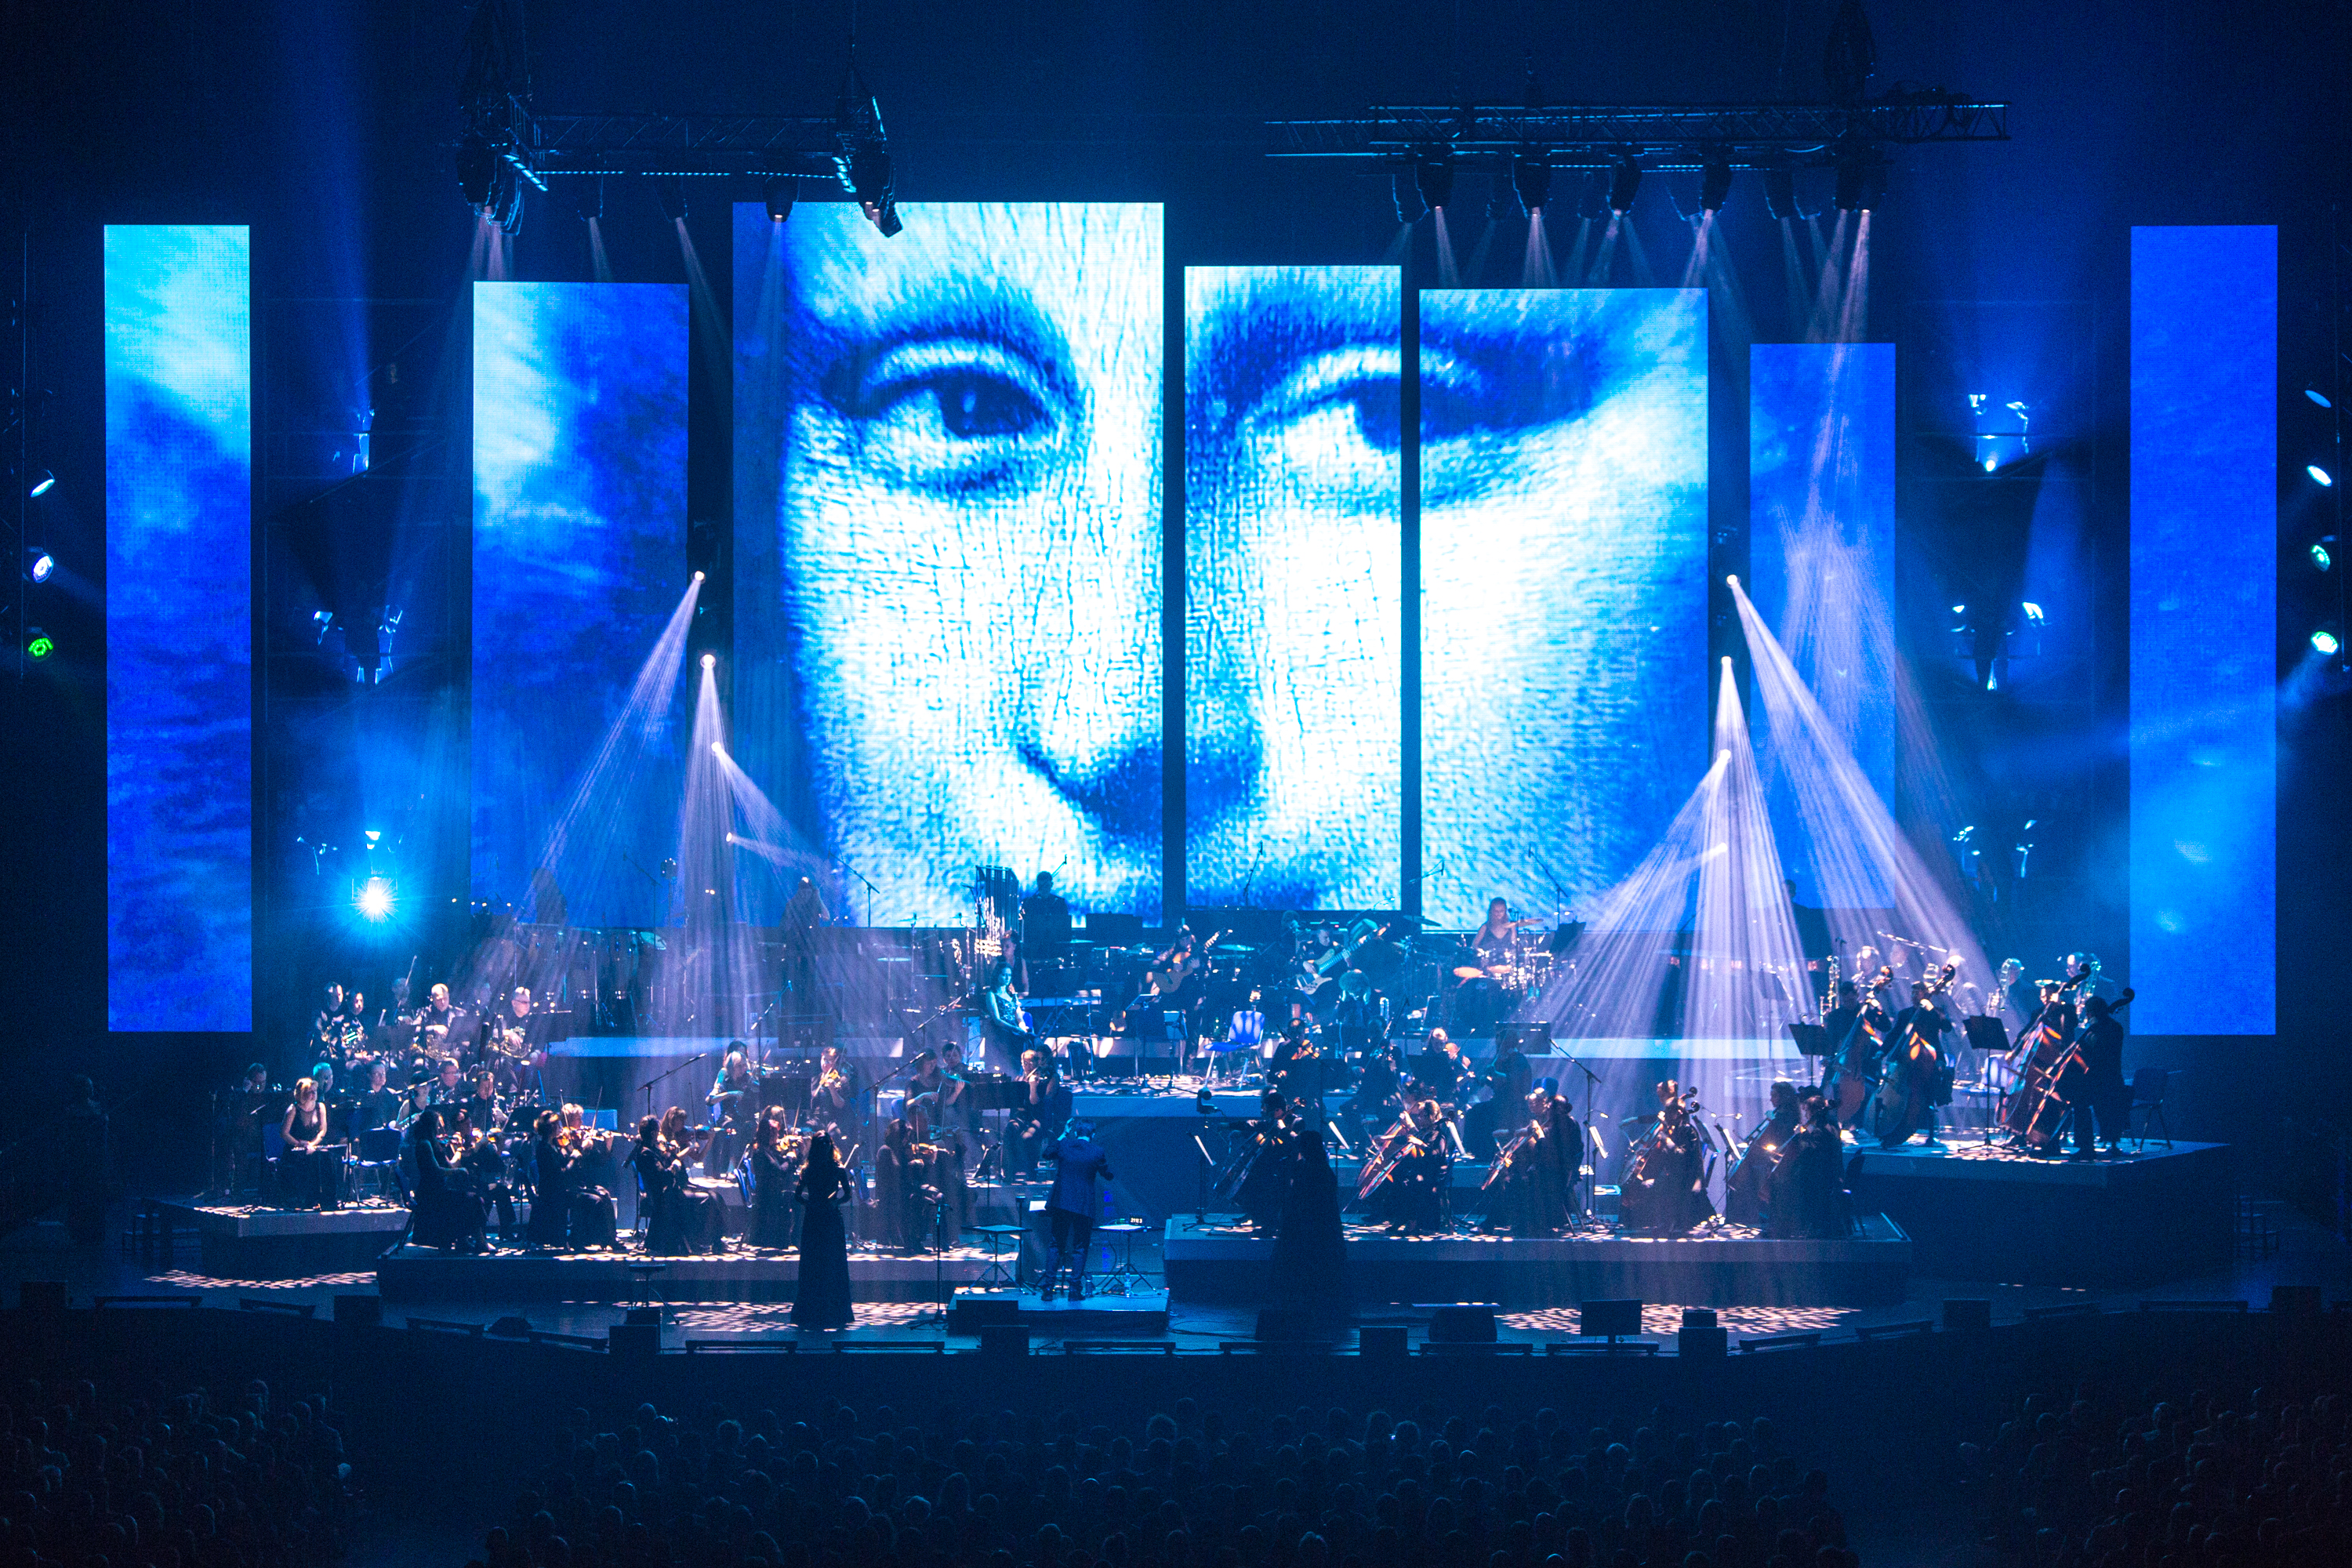 Zimmer Mannheim The World Of Hans Zimmer A Symphonic Celebration